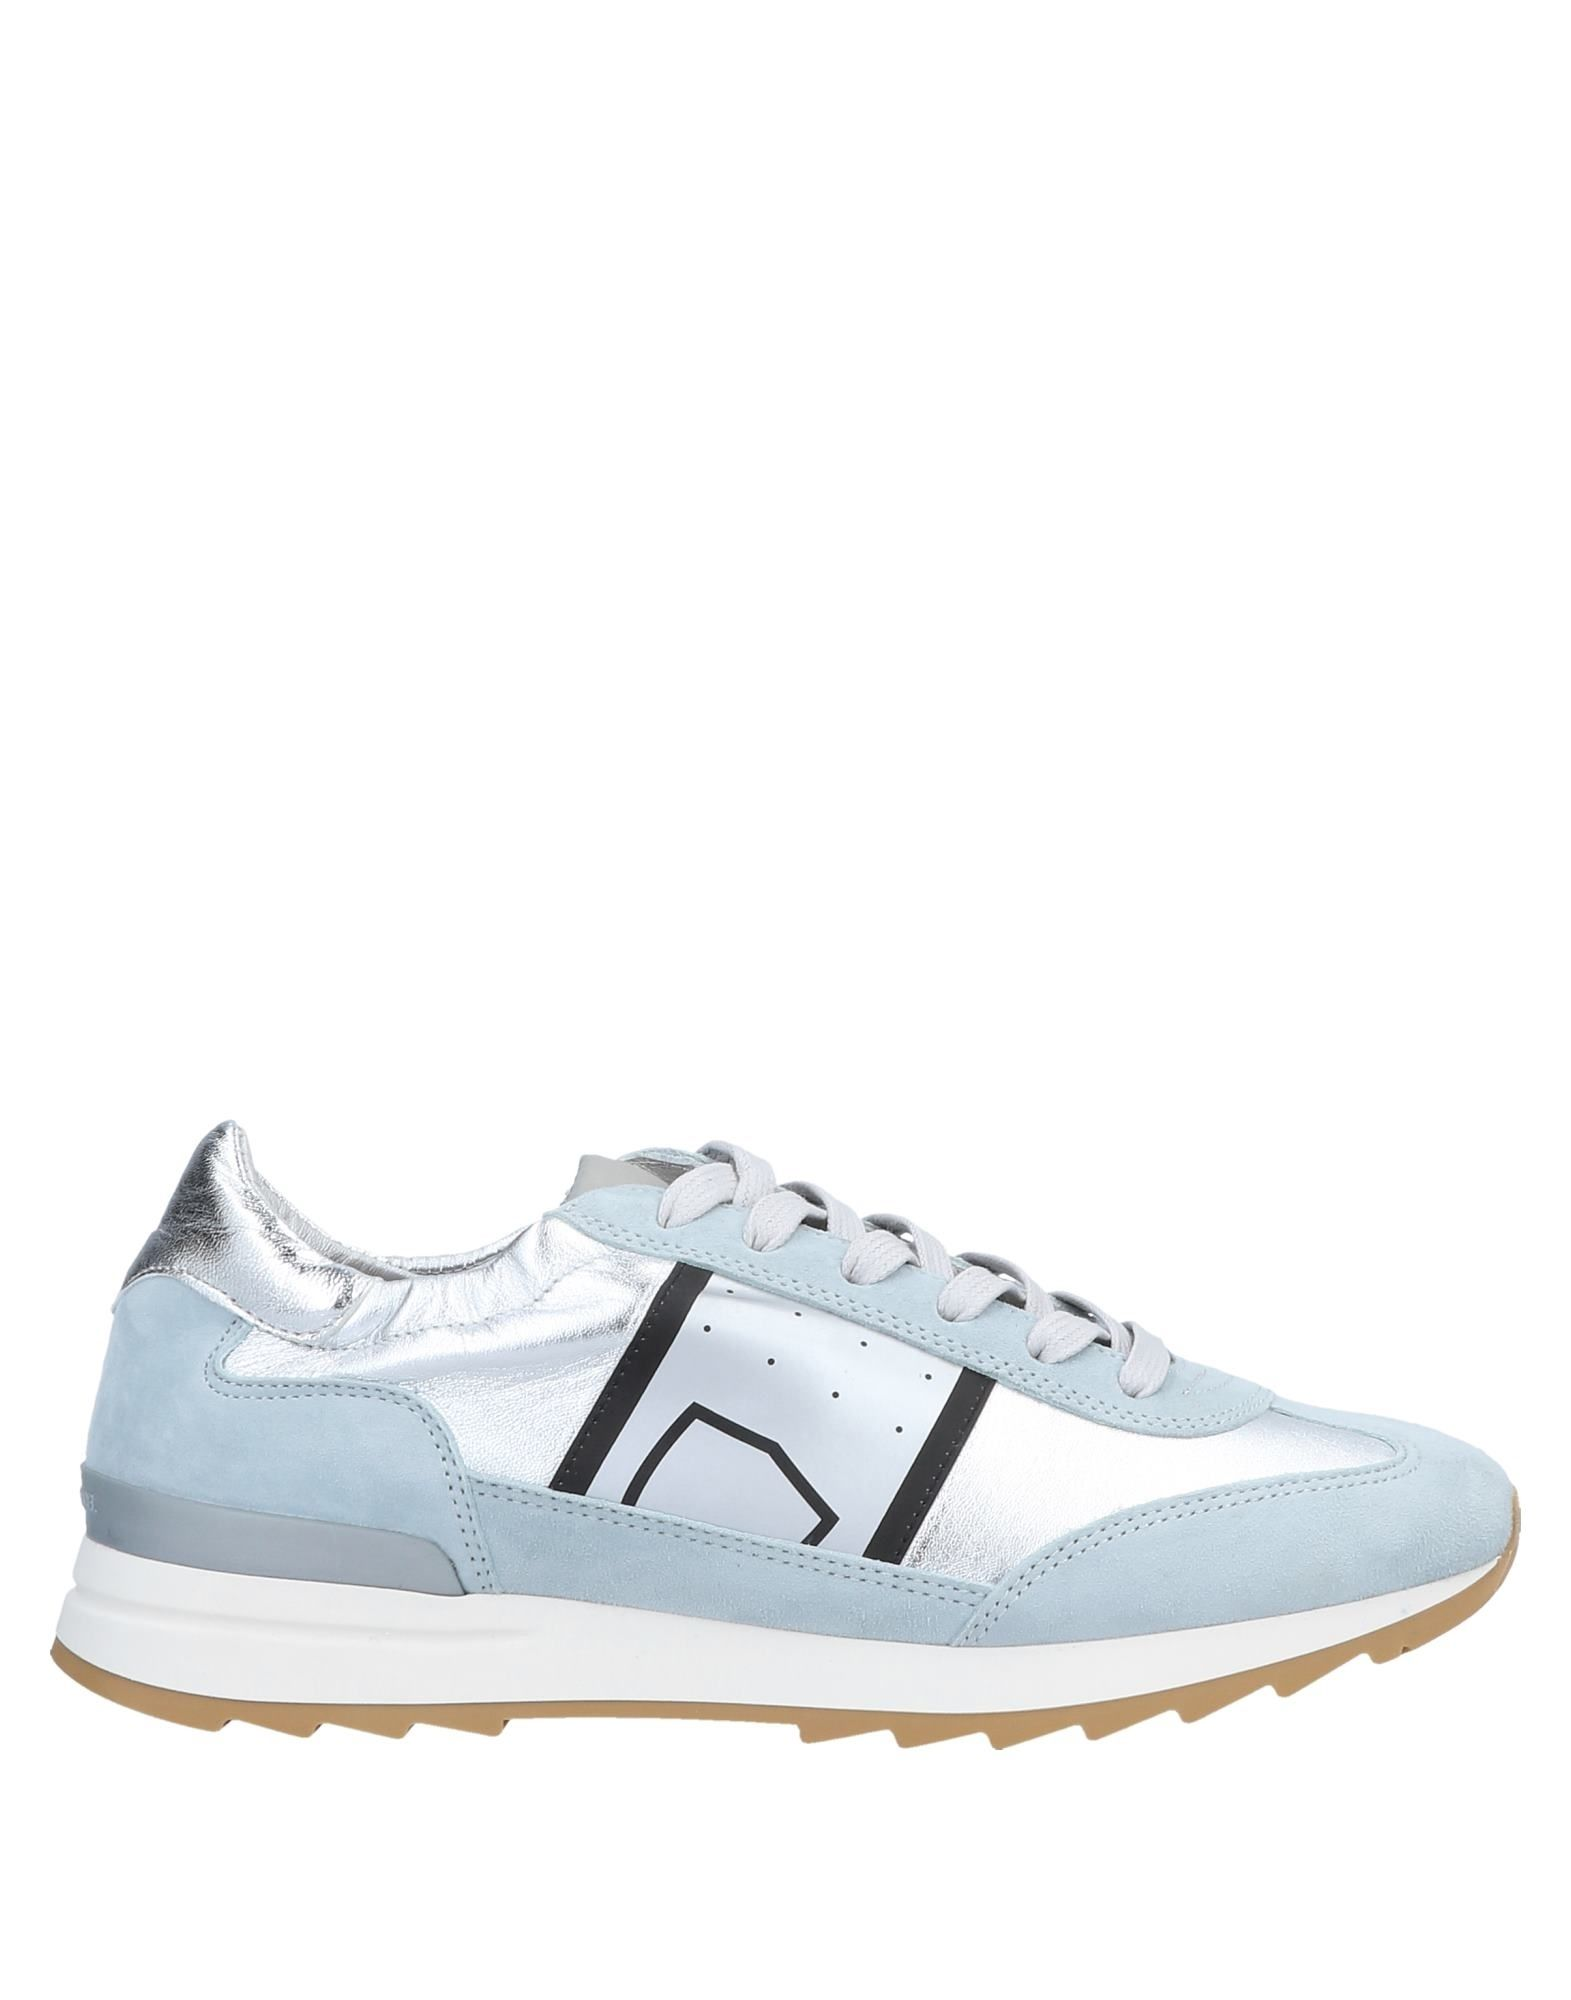 Philippe Model Sneakers - Women Philippe Model Sneakers - online on  Australia - Sneakers 11566409GC 35846d